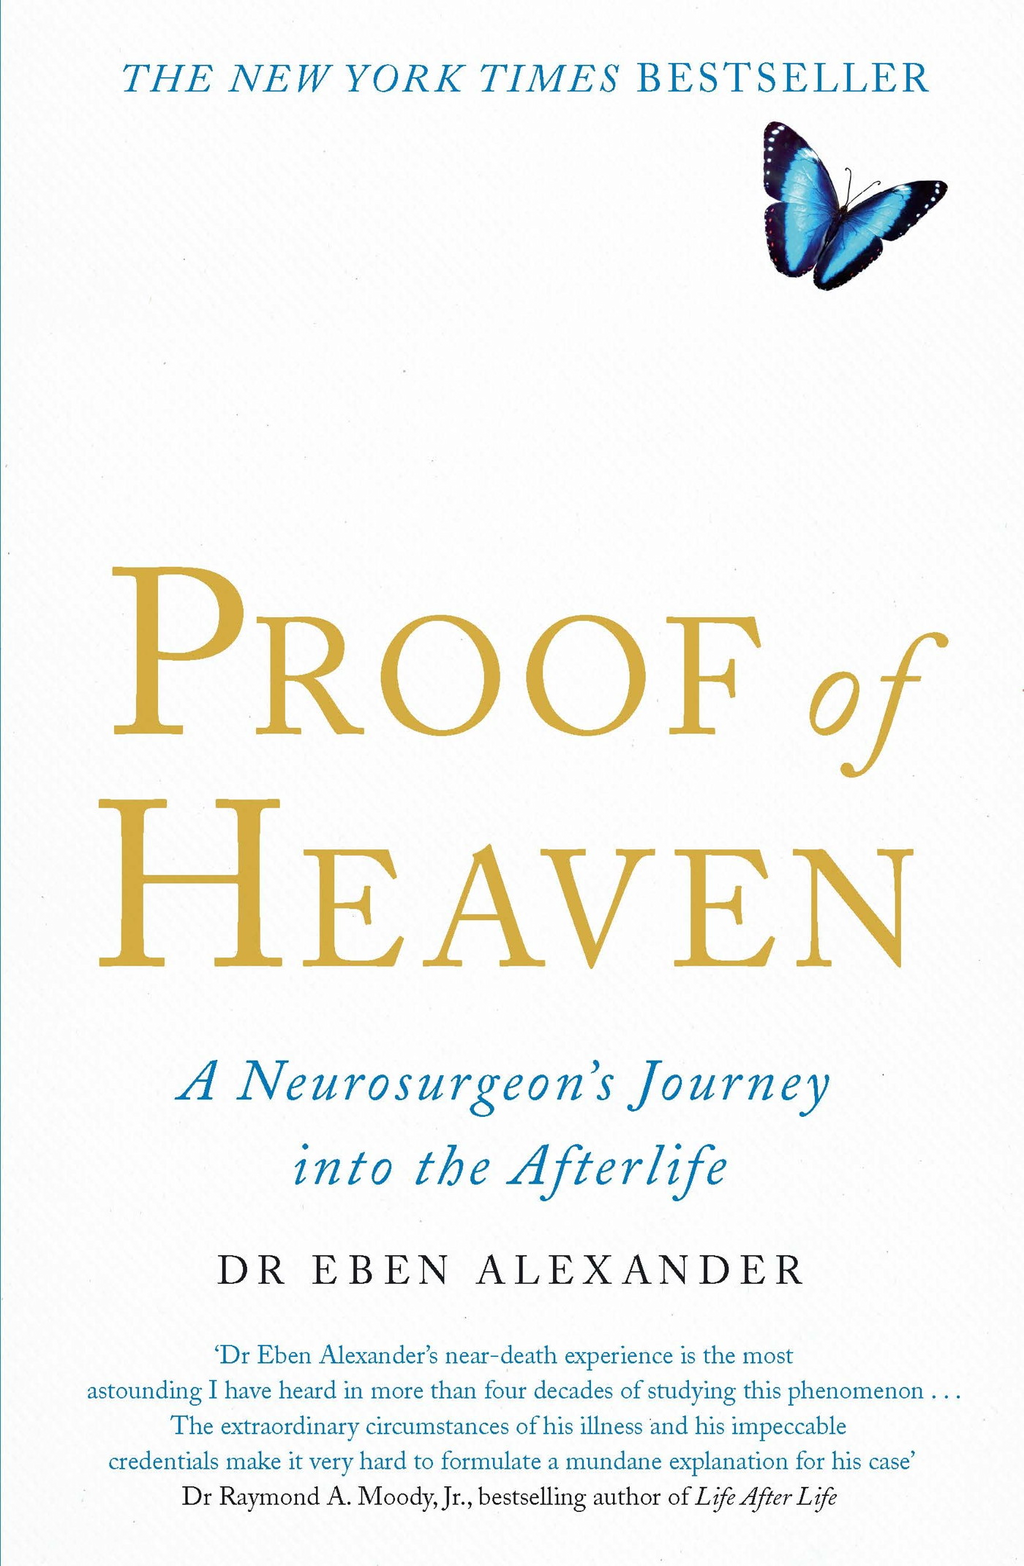 Proof of Heaven A Neurosurgeon's Journey into the Afterlife